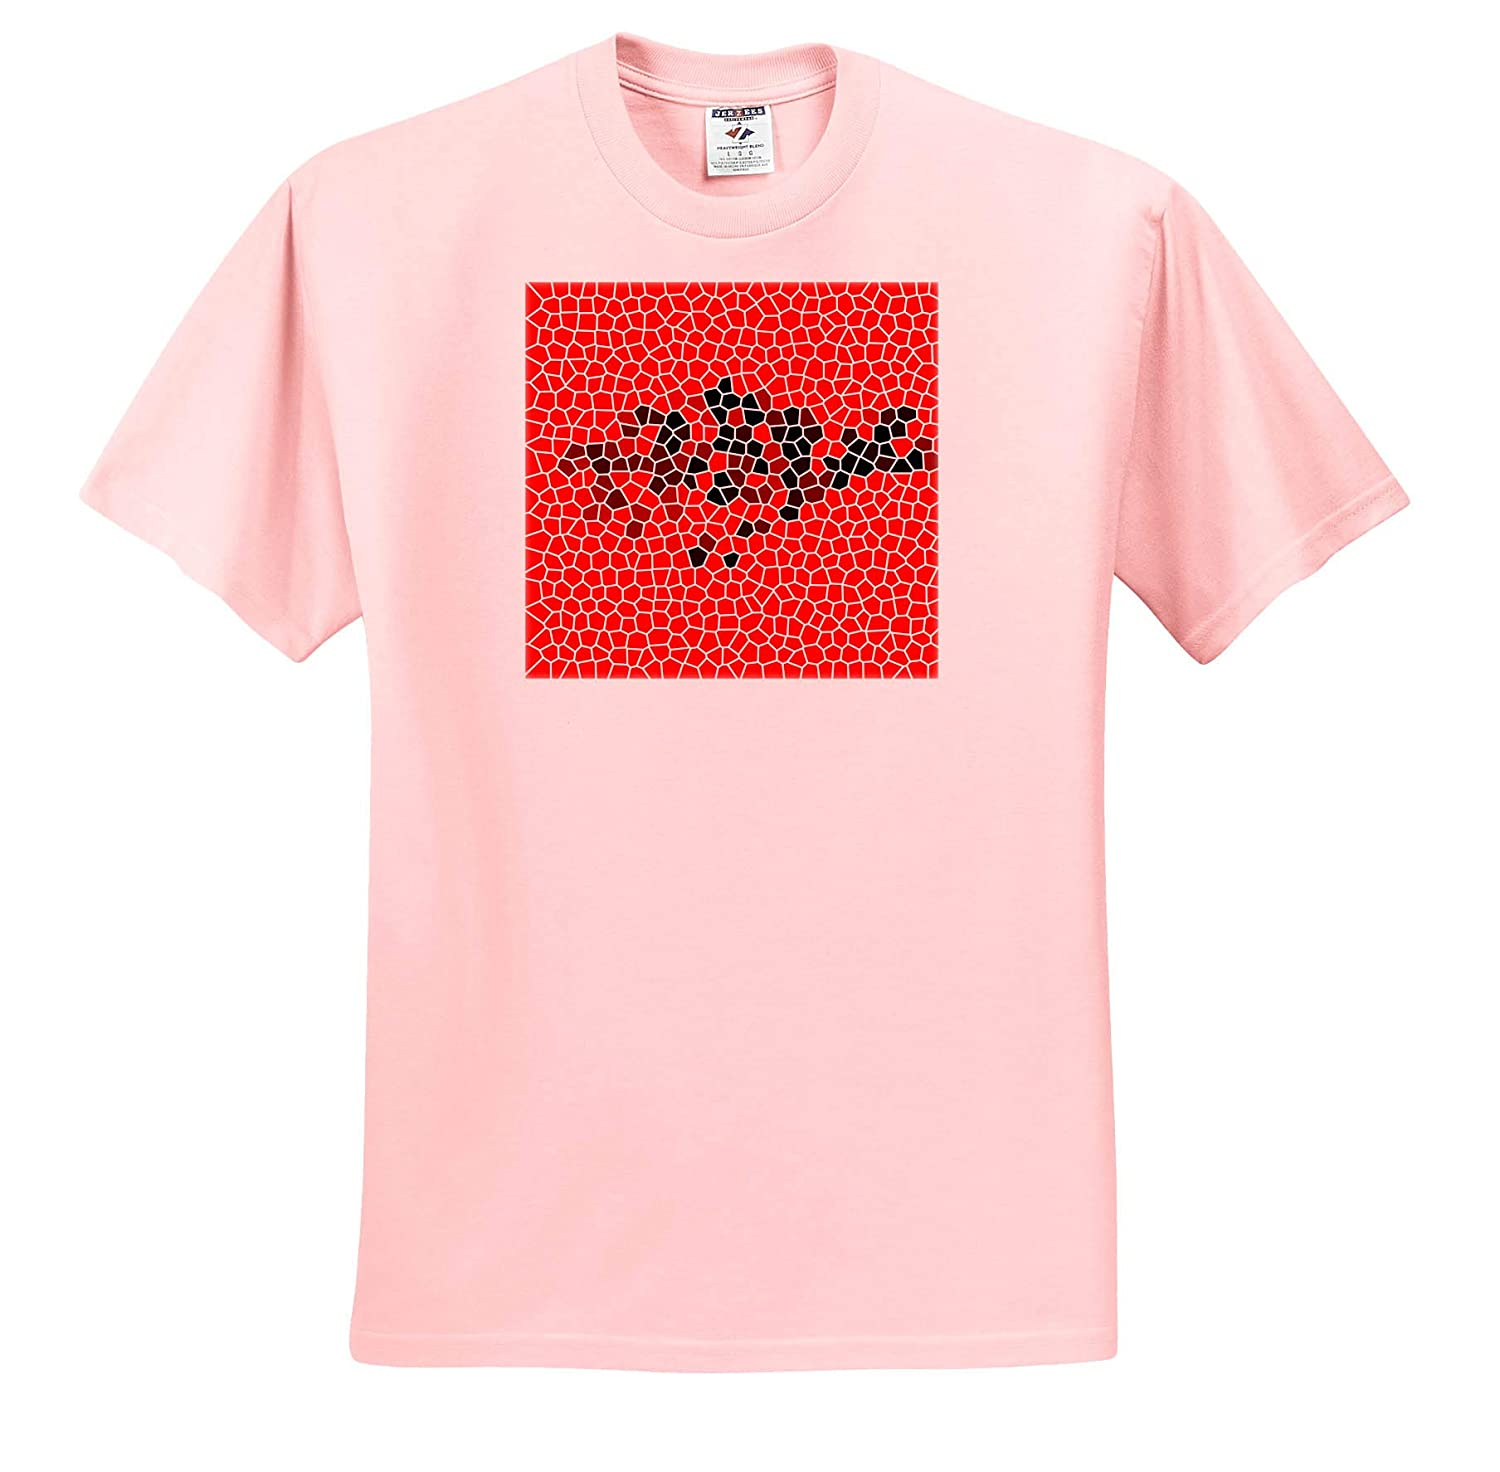 3dRose Kike Calvo Anthropology and Ethnomusicology T-Shirts Red and Black Abstract Mosaic of a Flat Fish